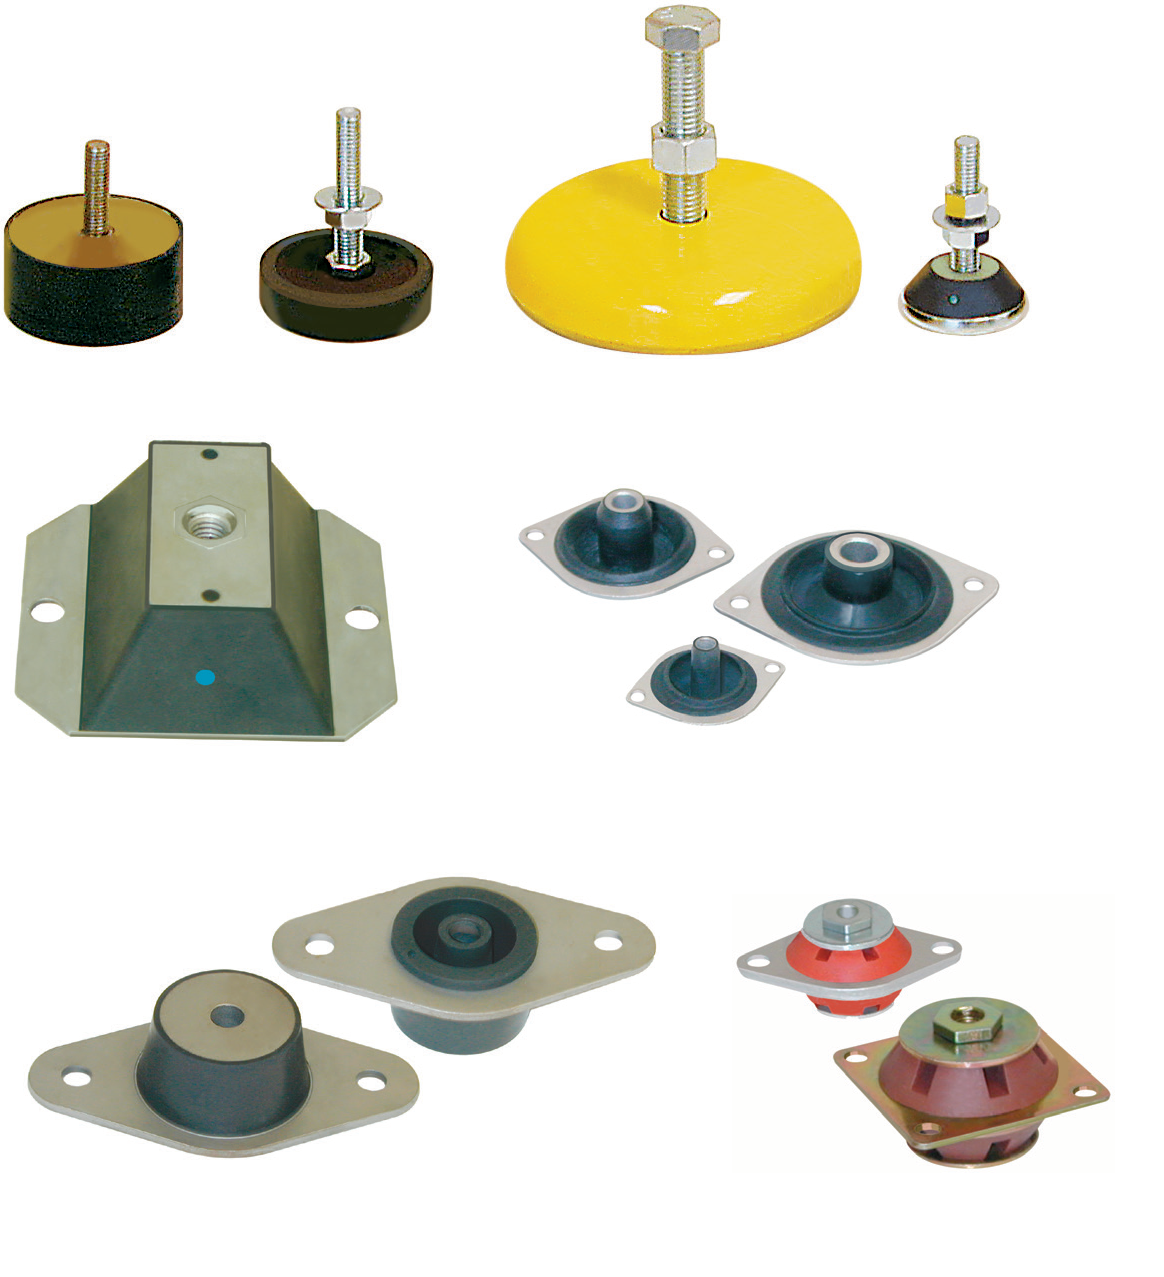 Mounts and Levelers For Vibration and Shock Isolation